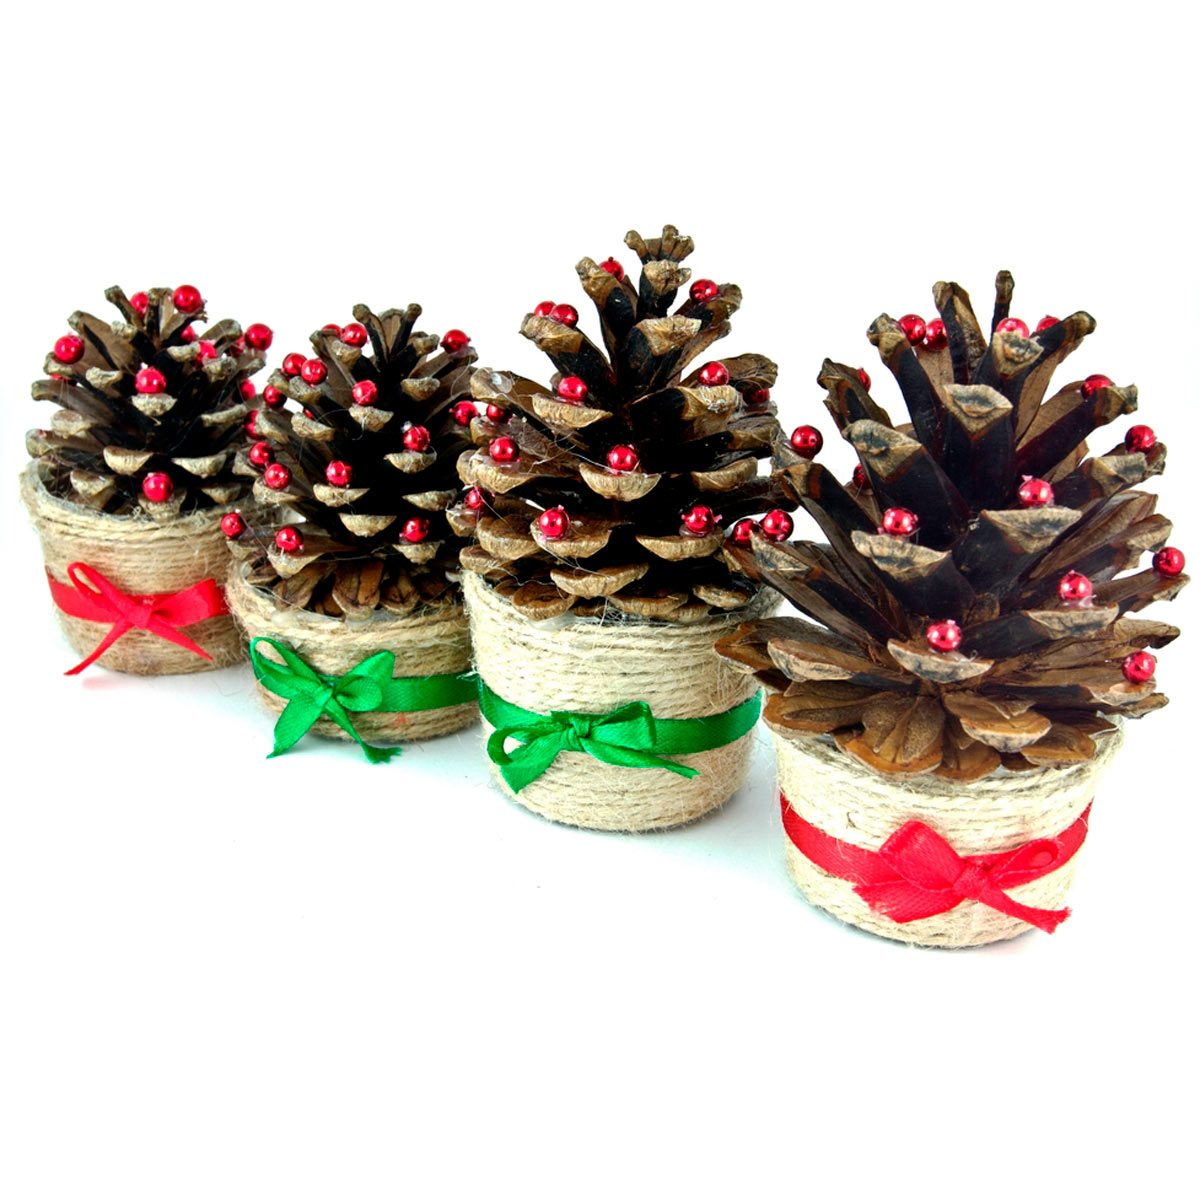 10 Pine Cone Crafts To Do This Fall Family Handyman